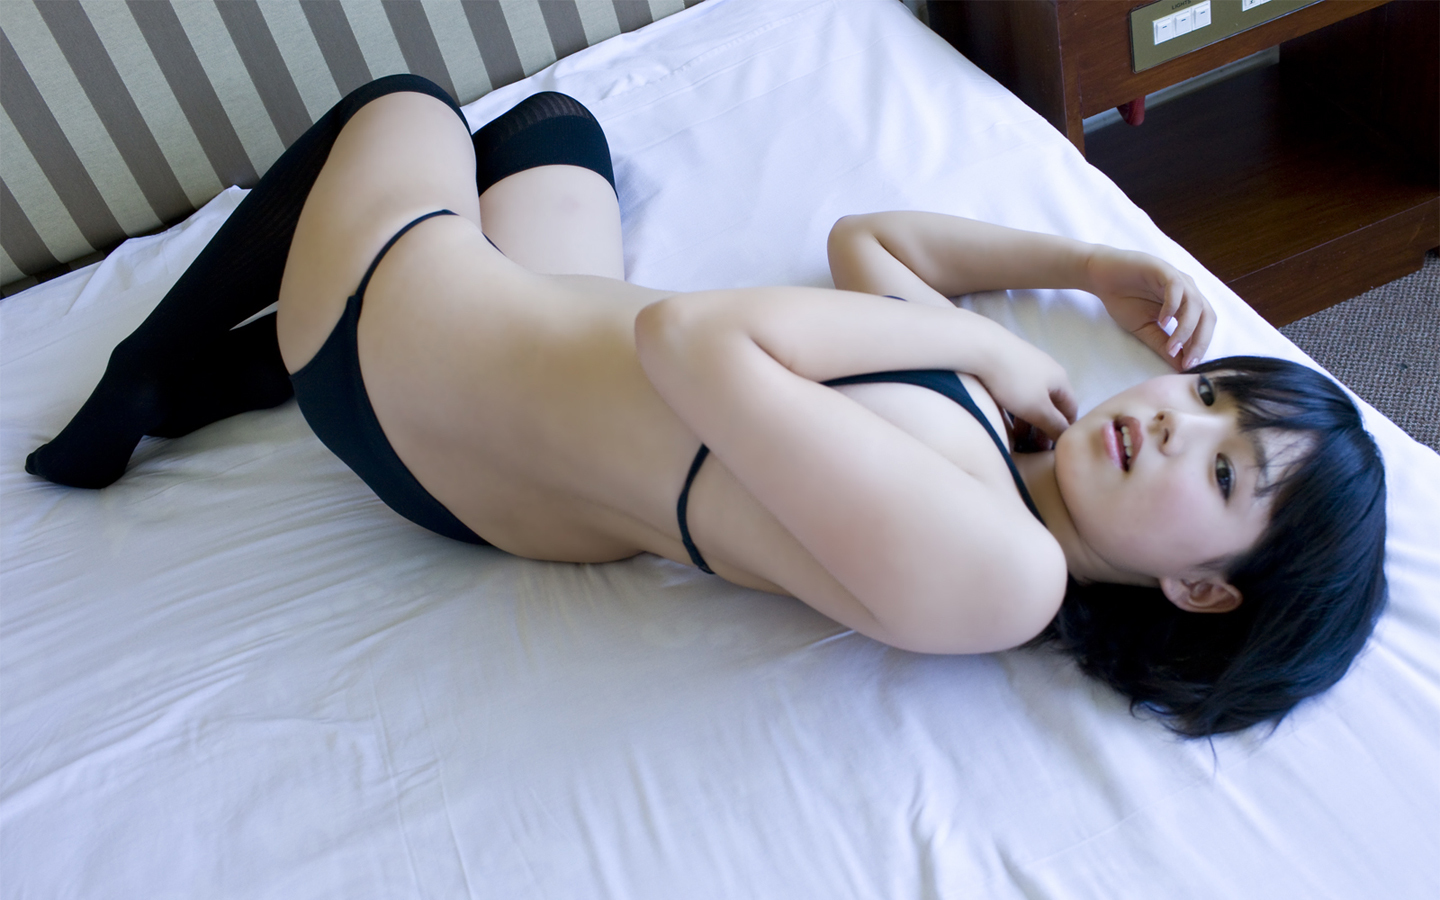 woman panties beds asians HD Wallpaper